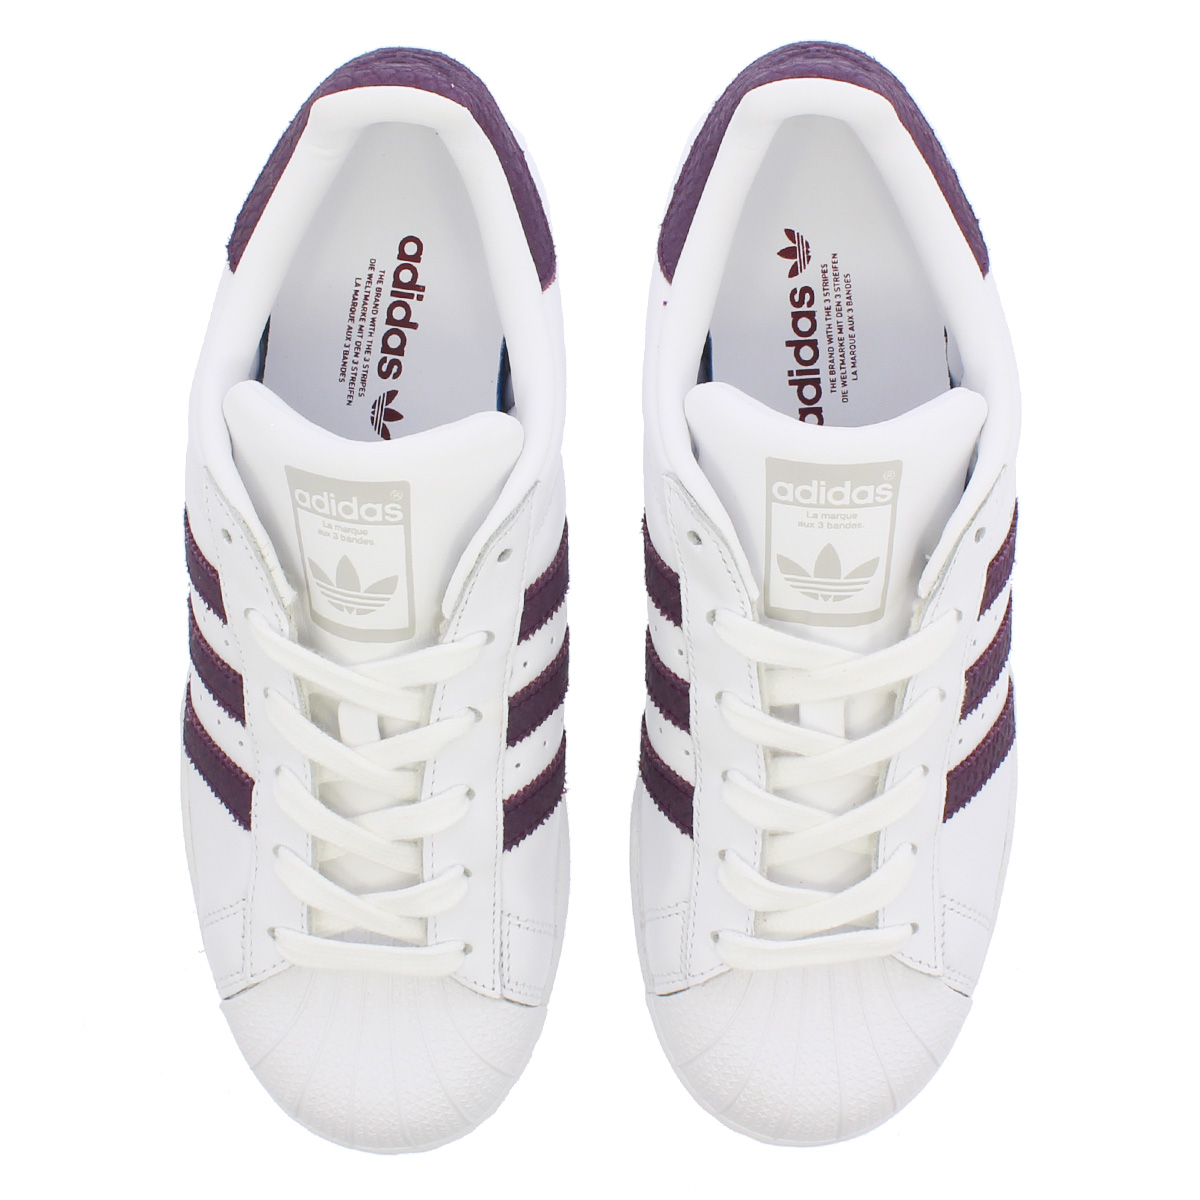 classic fit 63e18 fa7d0 adidas SUPERSTAR W Adidas superstar W RUNNING WHITE/RED NIGHT/SILVER MET  b41510